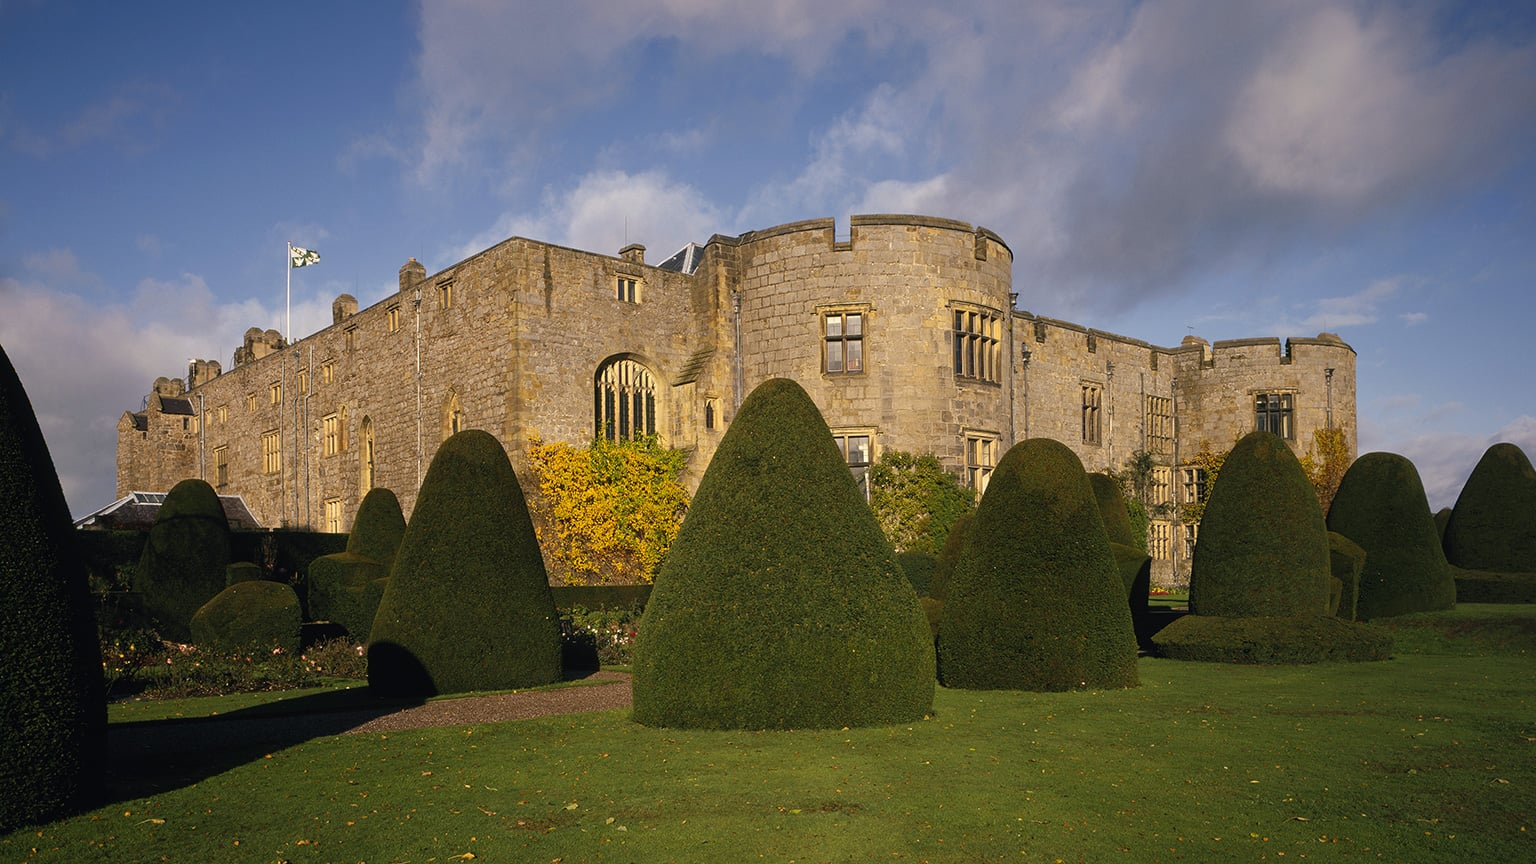 2. Chirk Castle, Wrexham - Free entry with National Art pass